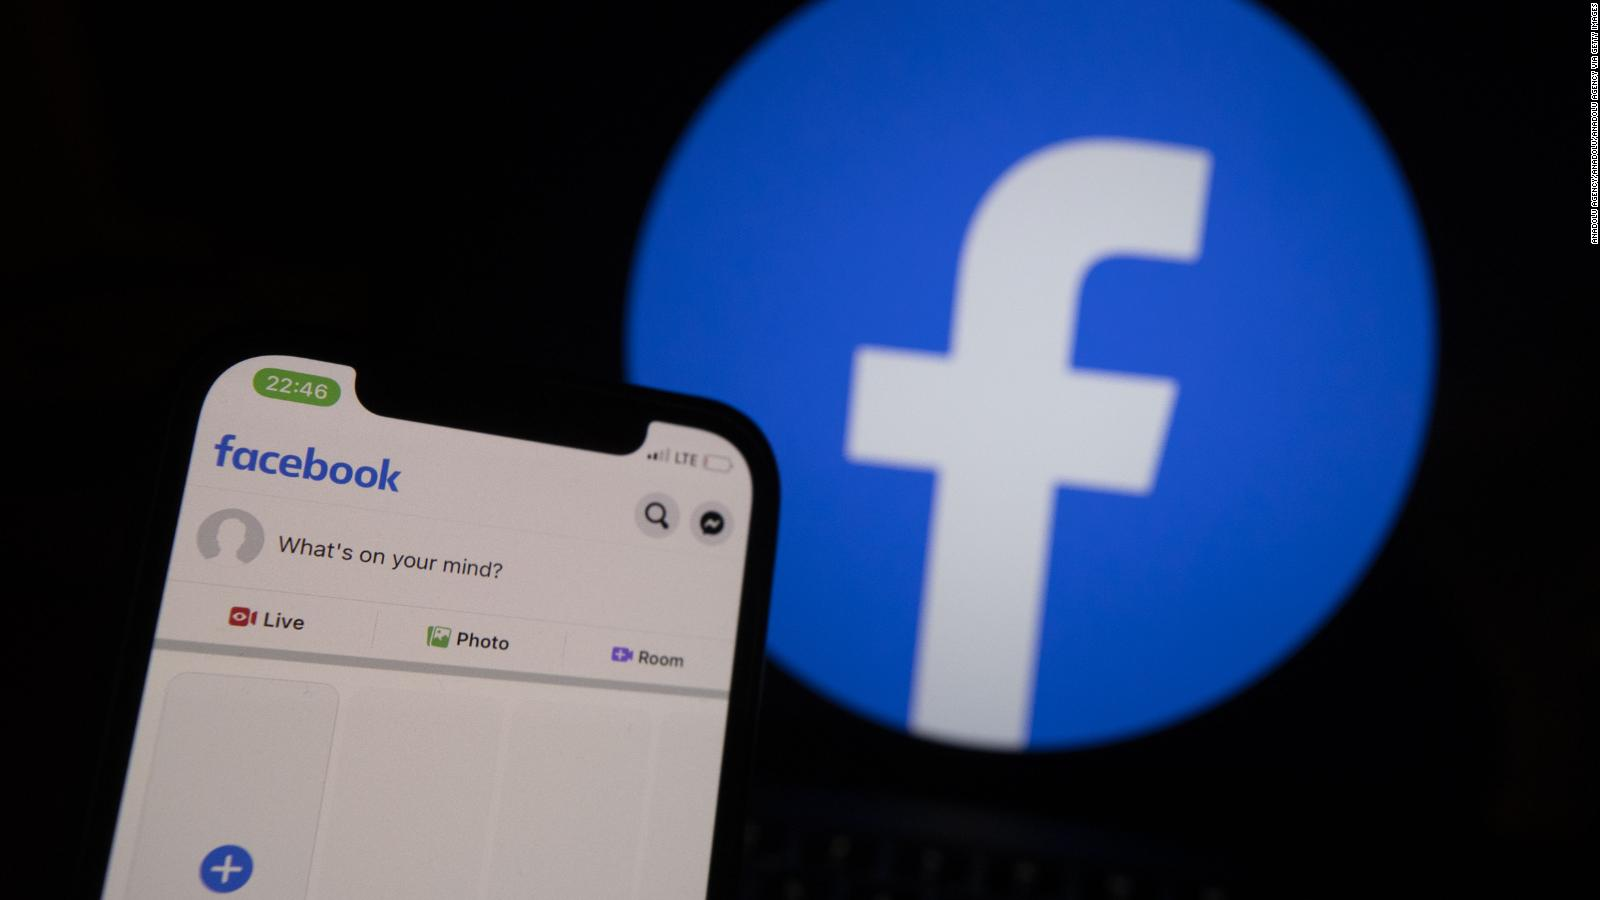 Facebook plans to change its name, according to a report